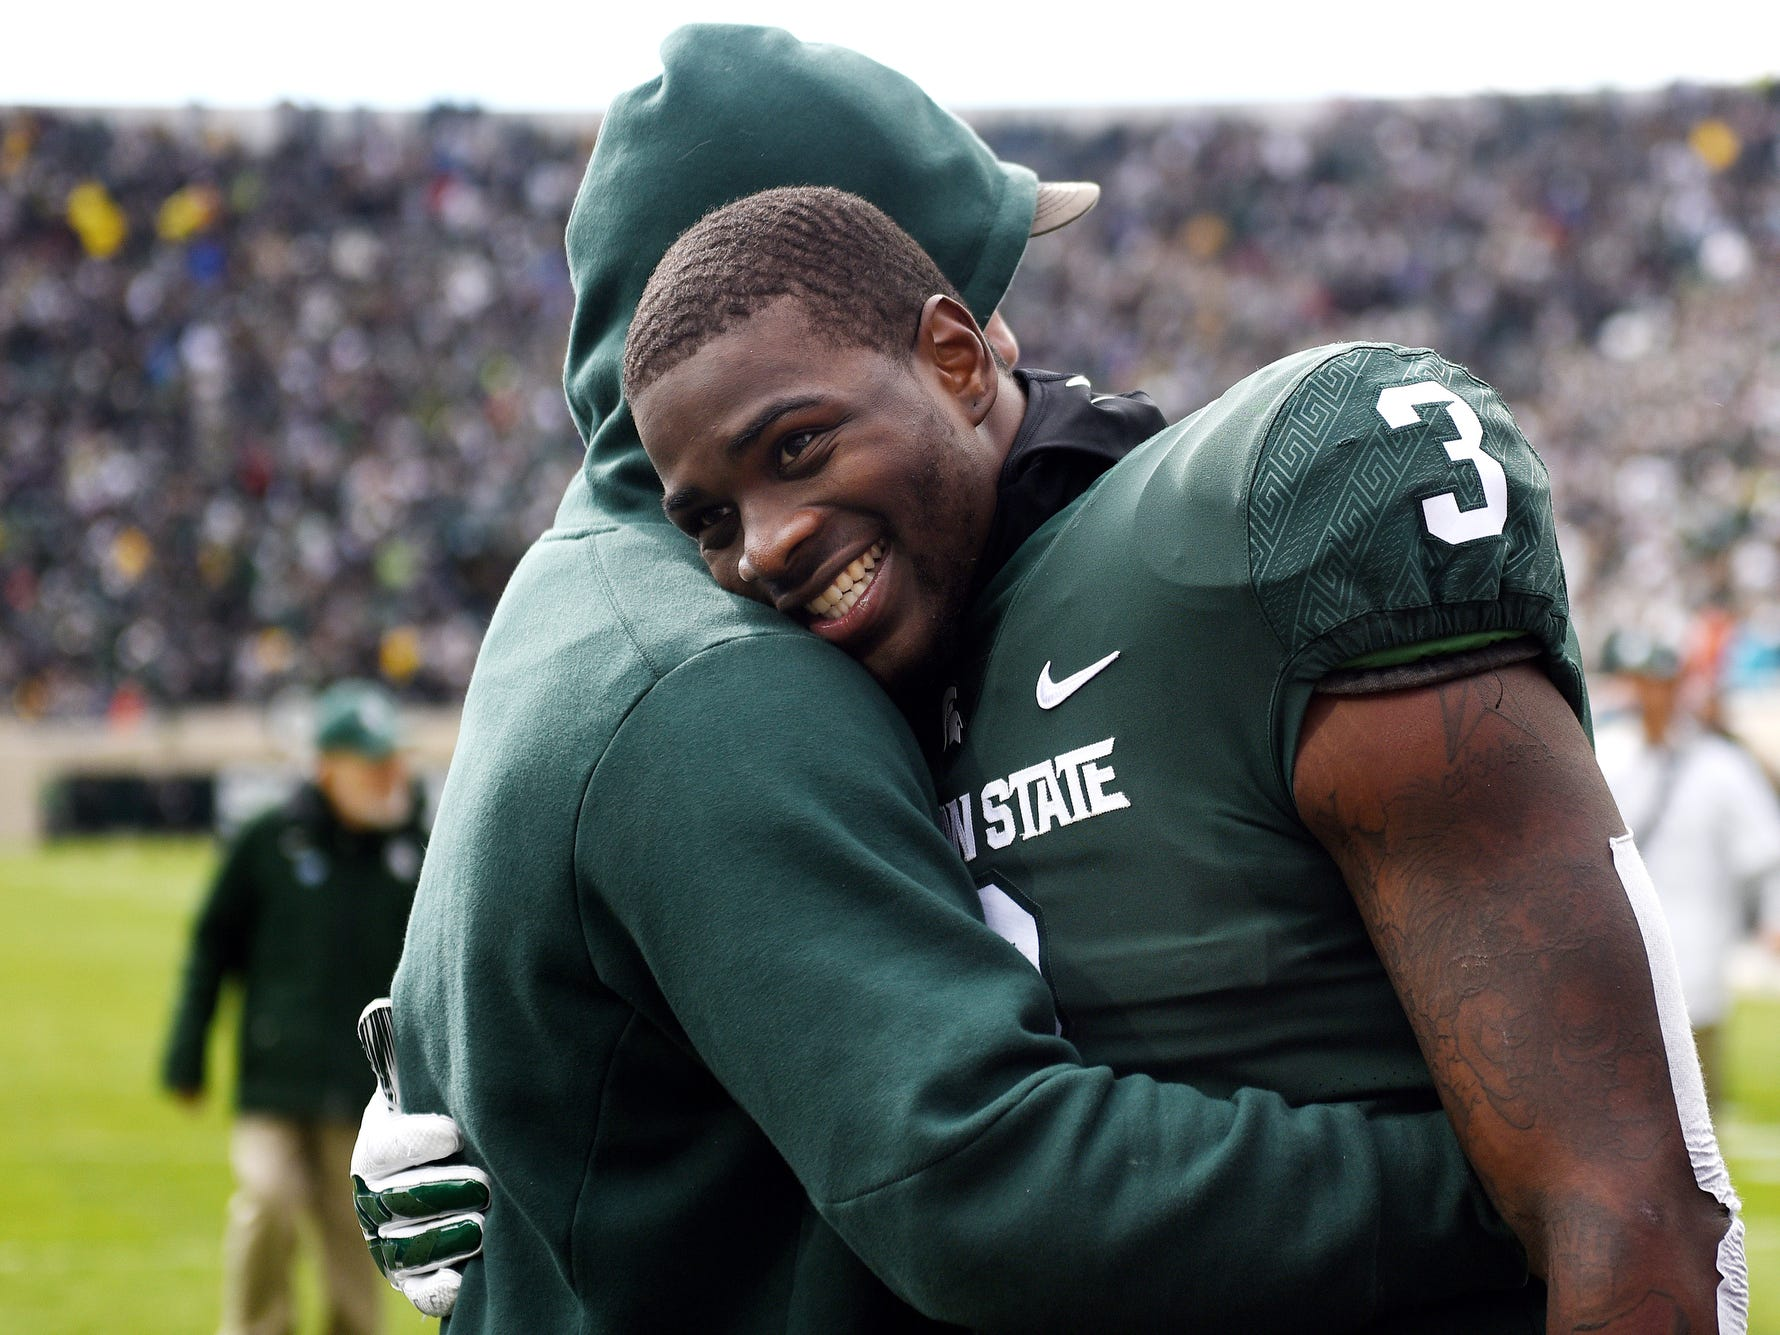 Michigan State's LJ Scott, right, hugs former Spartans linebacker Chris Frey while walking back to the locker room after the weather delay announcement in the first quarter on Saturday, Oct. 20, 2018, in East Lansing.